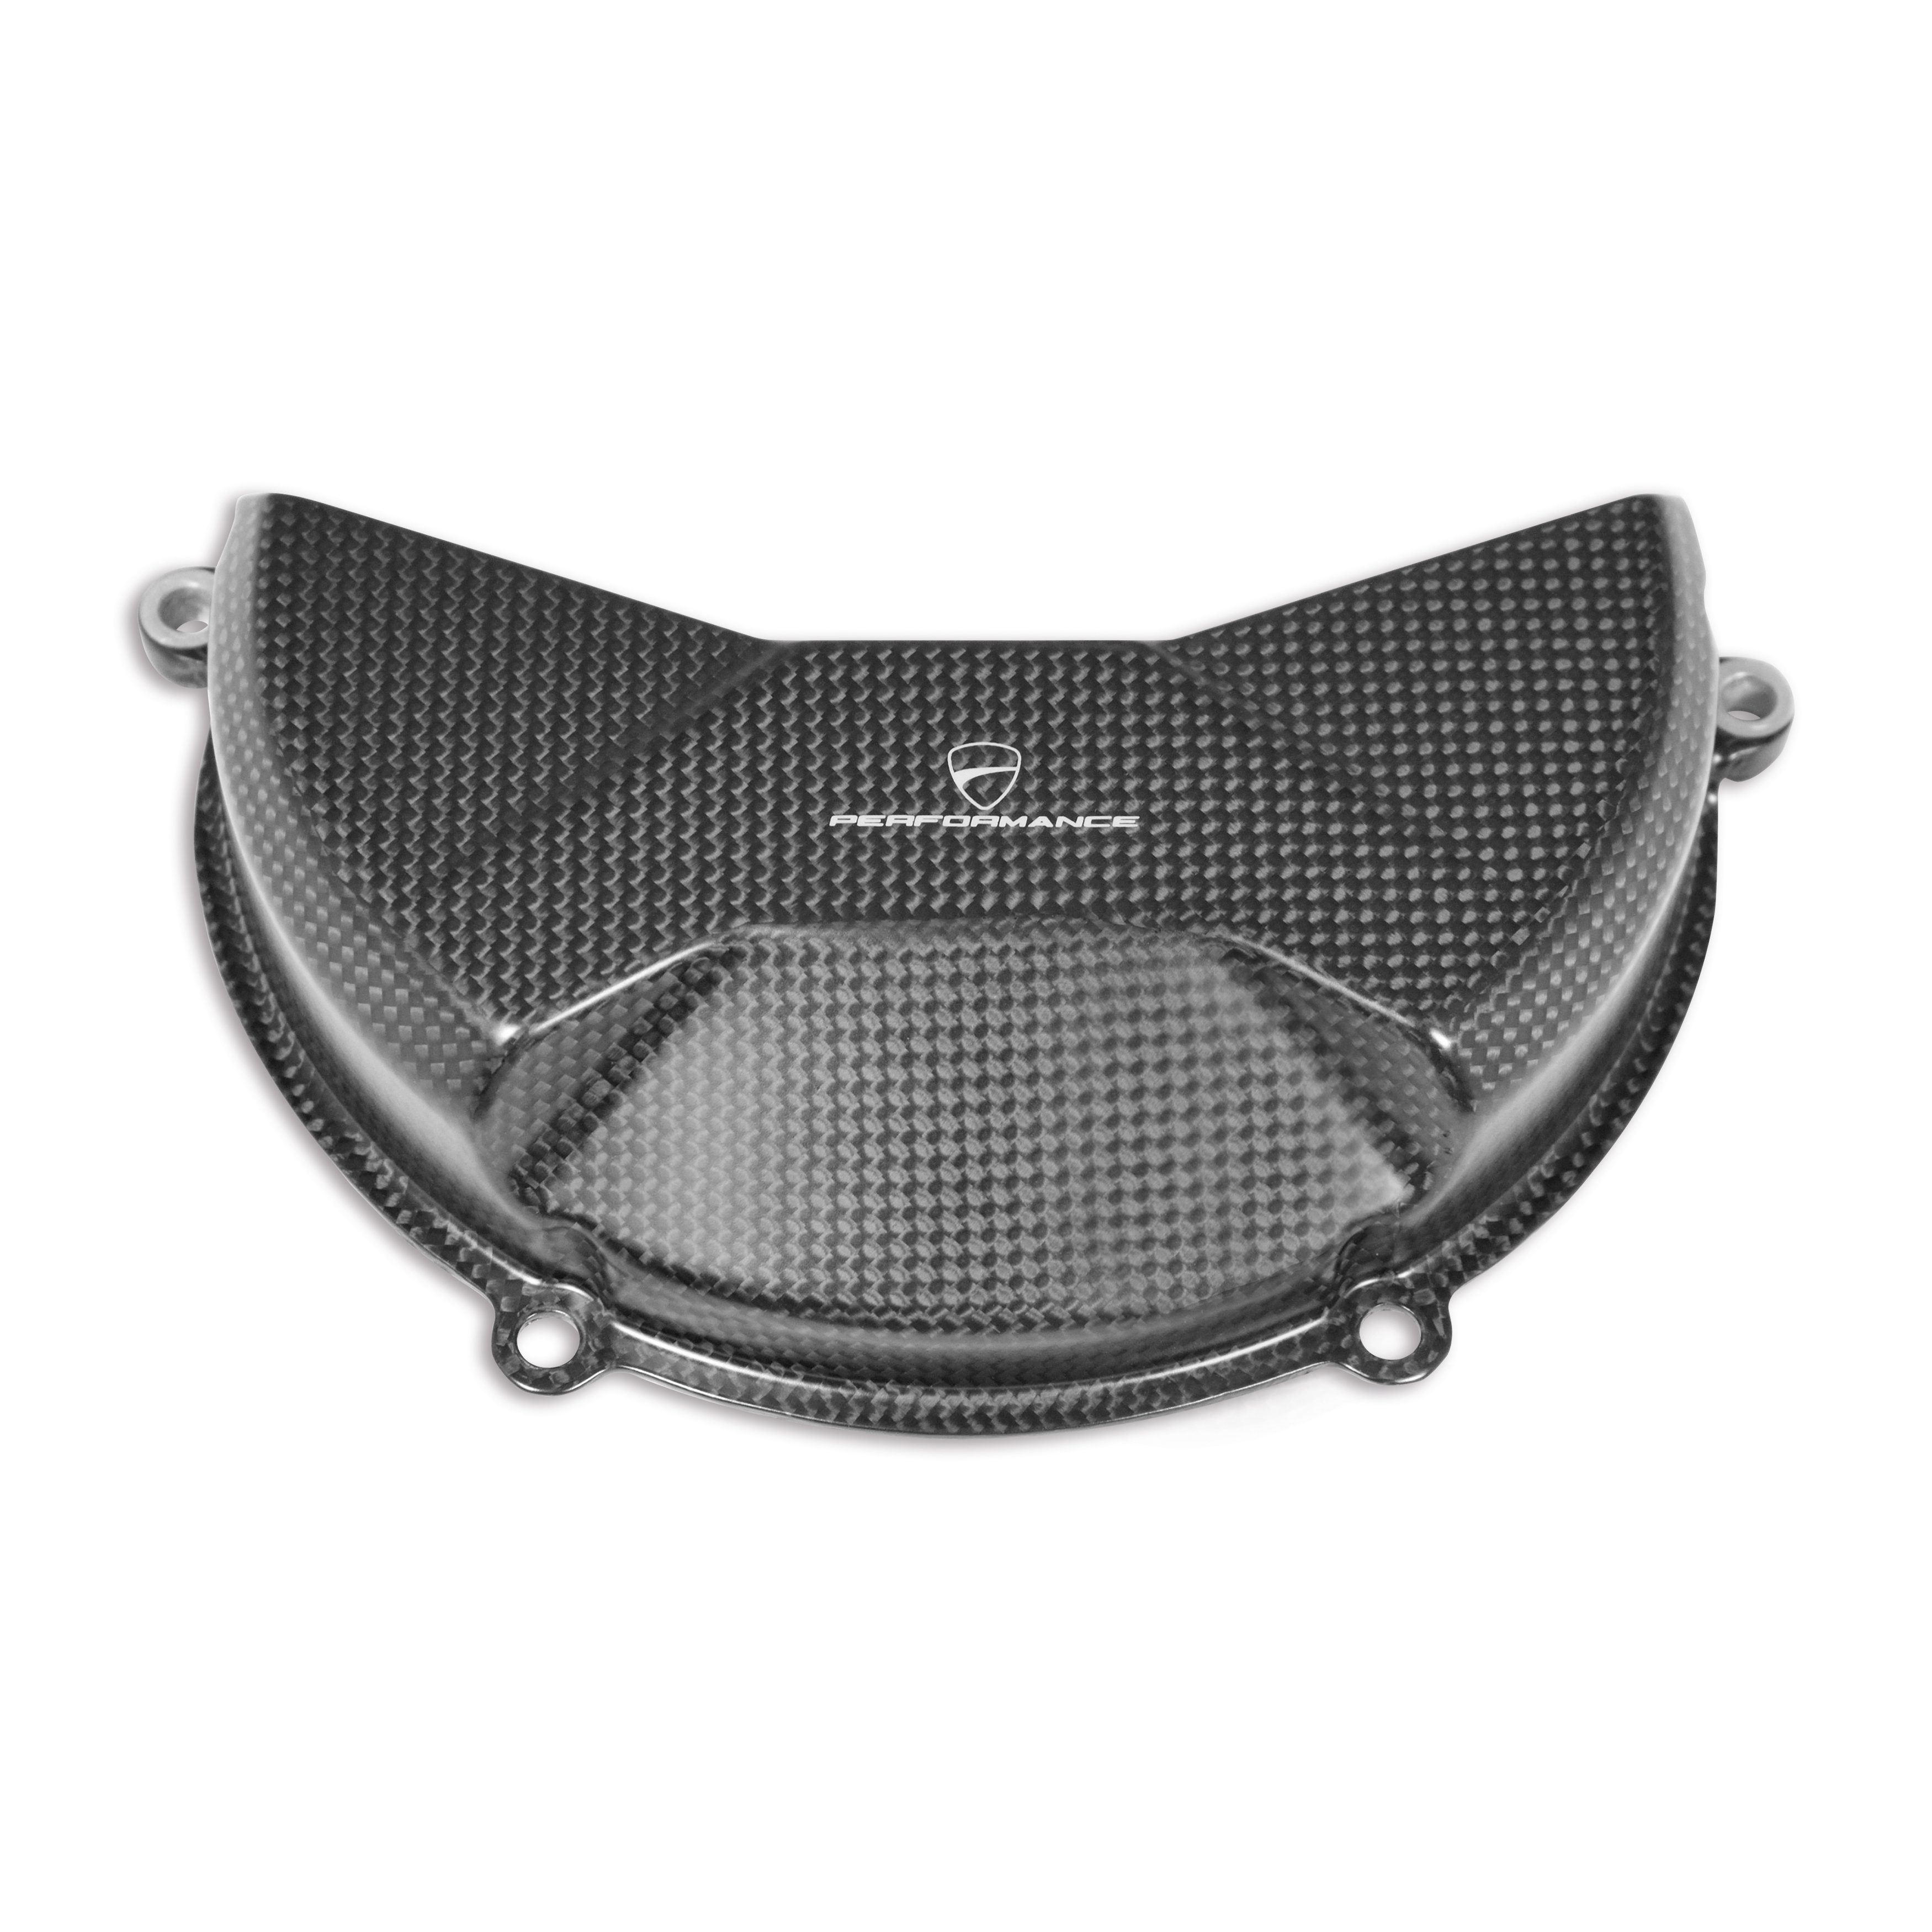 Carbon cover for clutch case.